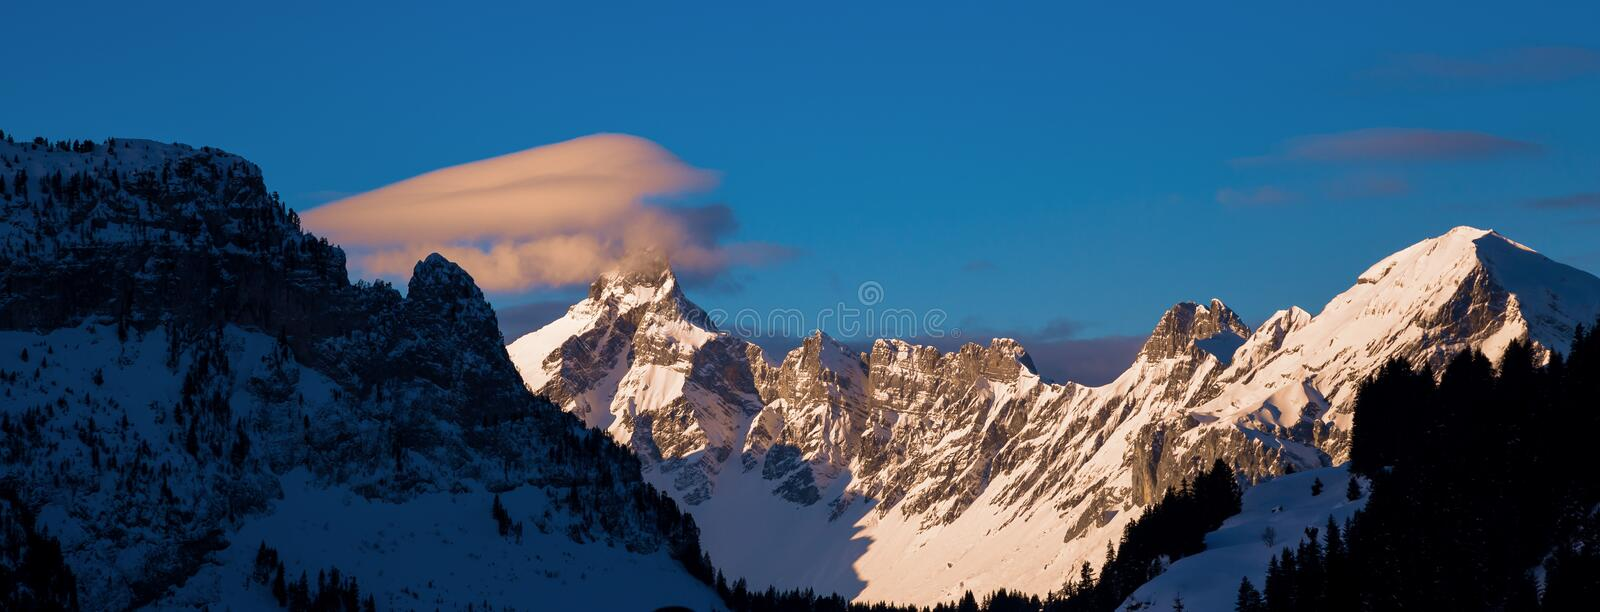 Panorama of winter snowy Alps. Colored sky at sunset sunset in snowy mountains. Flaine, Grand Massif, France stock images